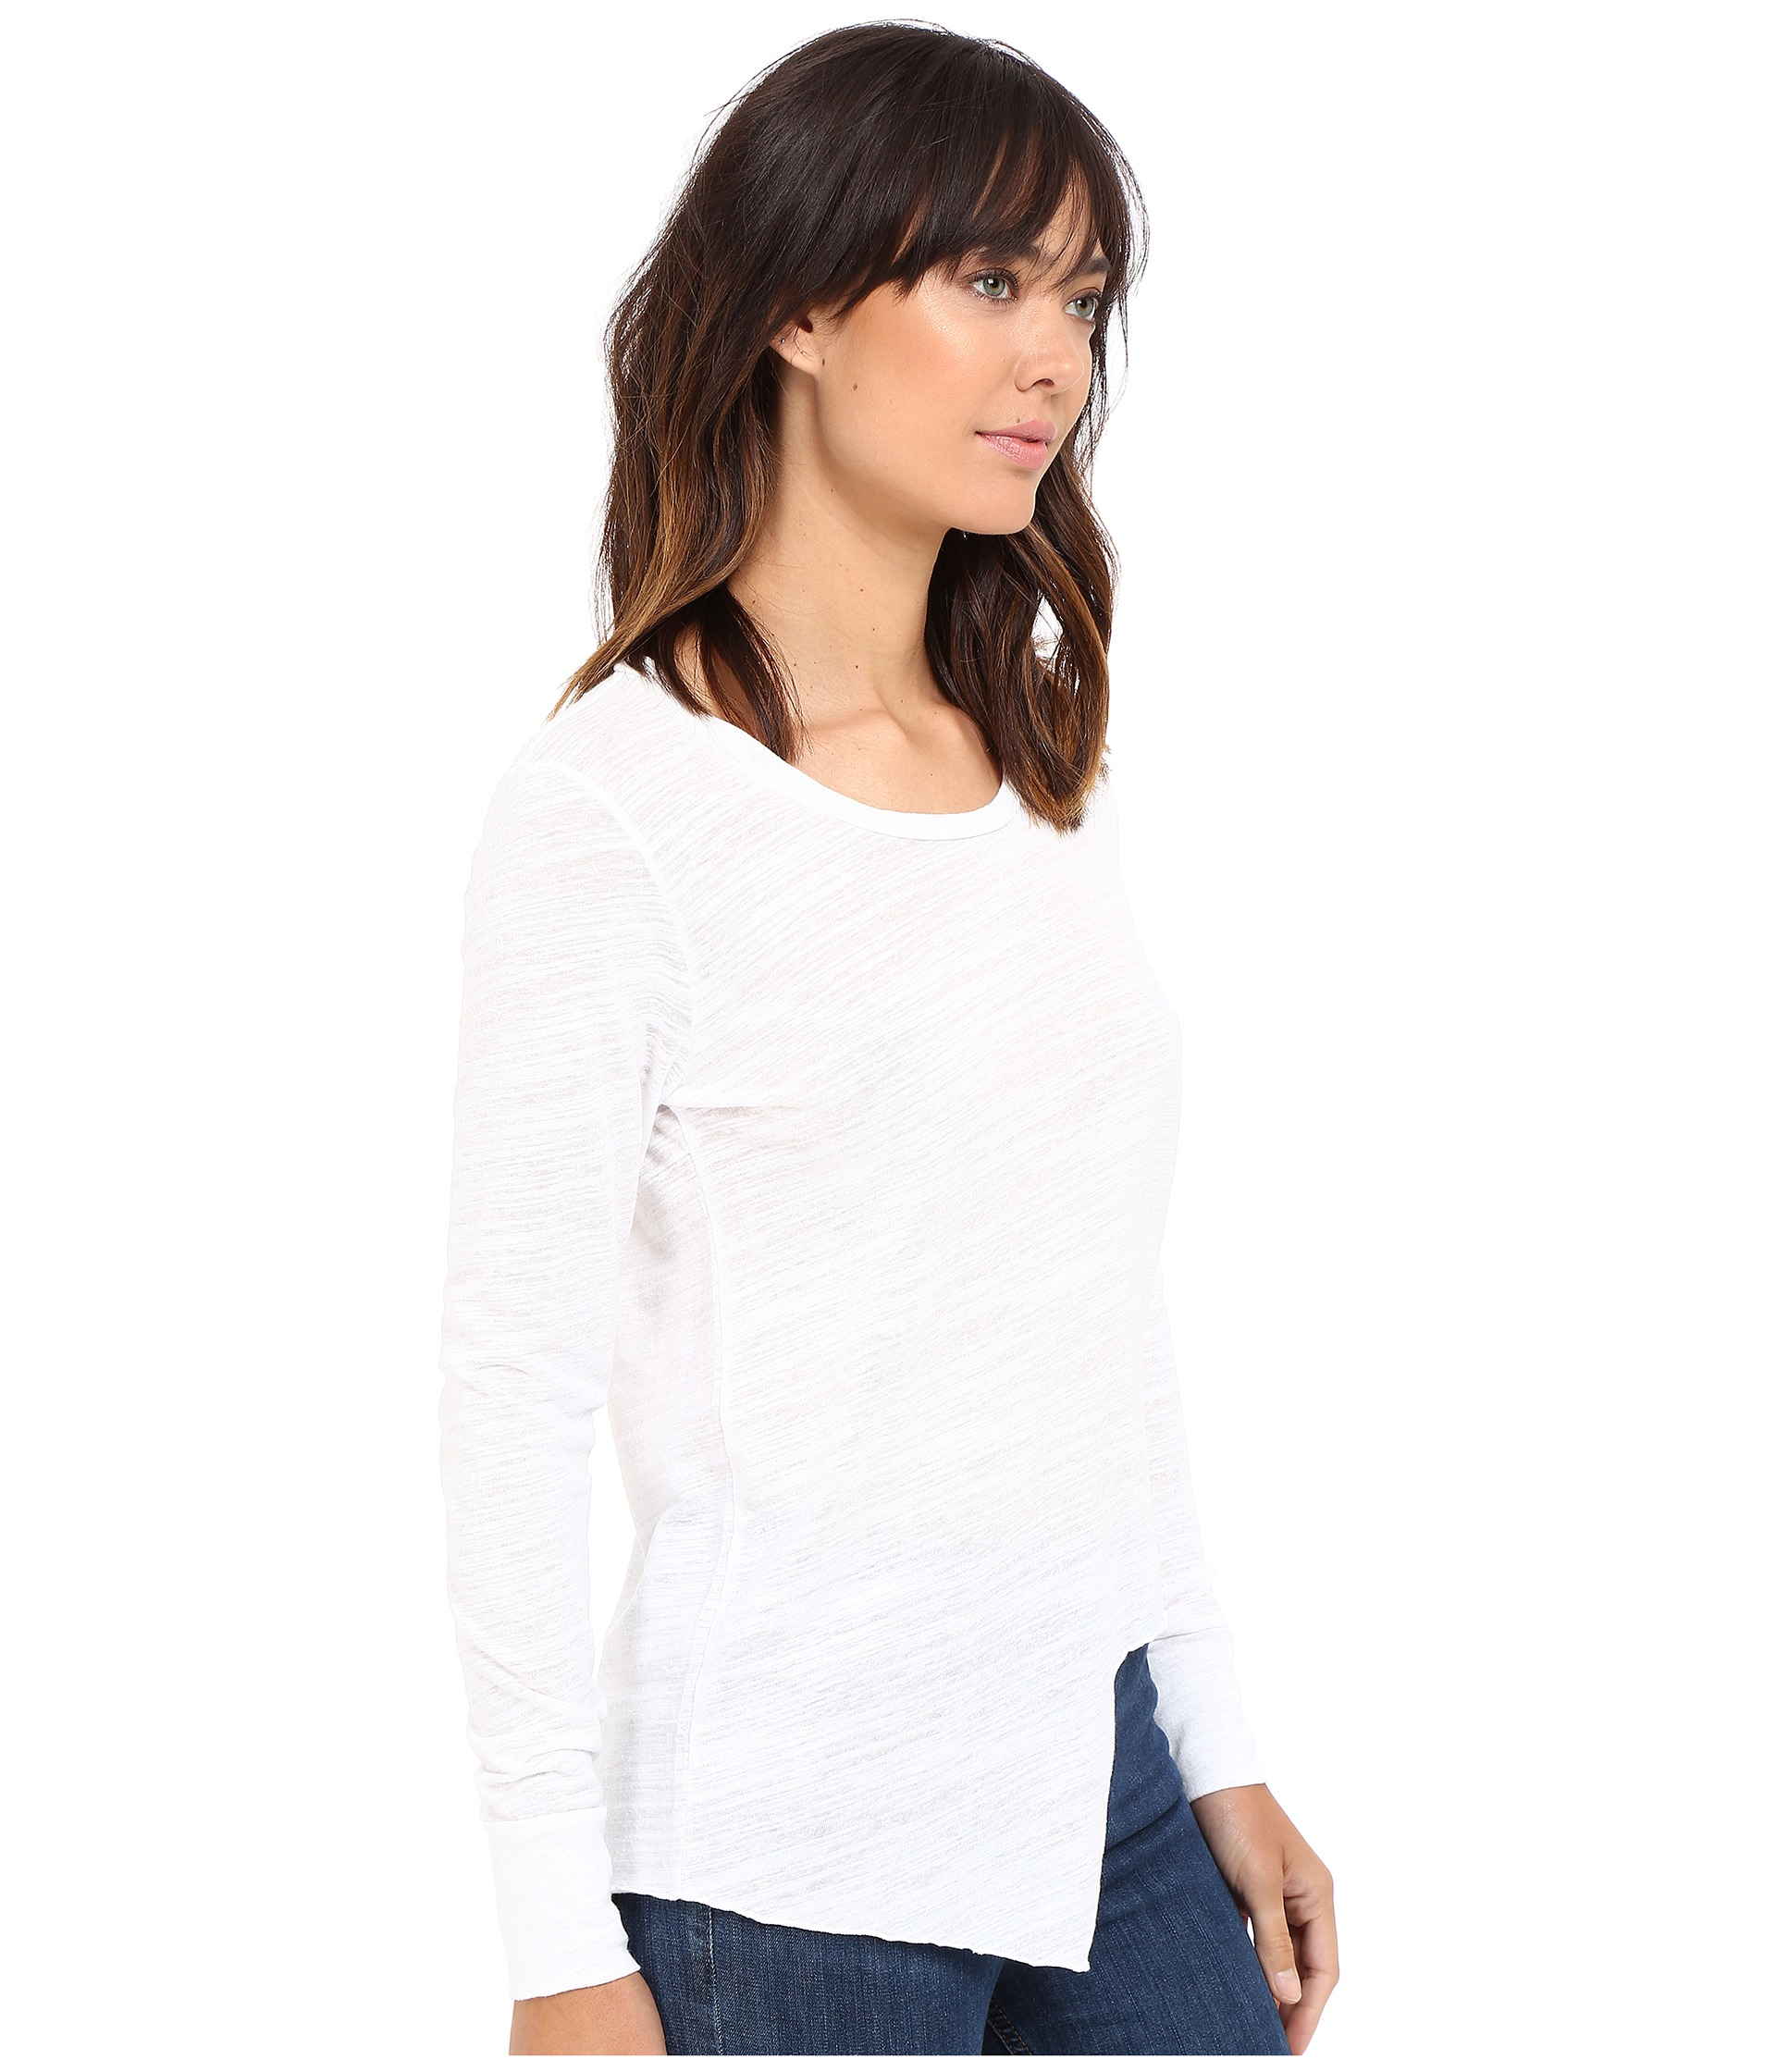 LNA Round Neckline Uneven Marrow Long Sleeve